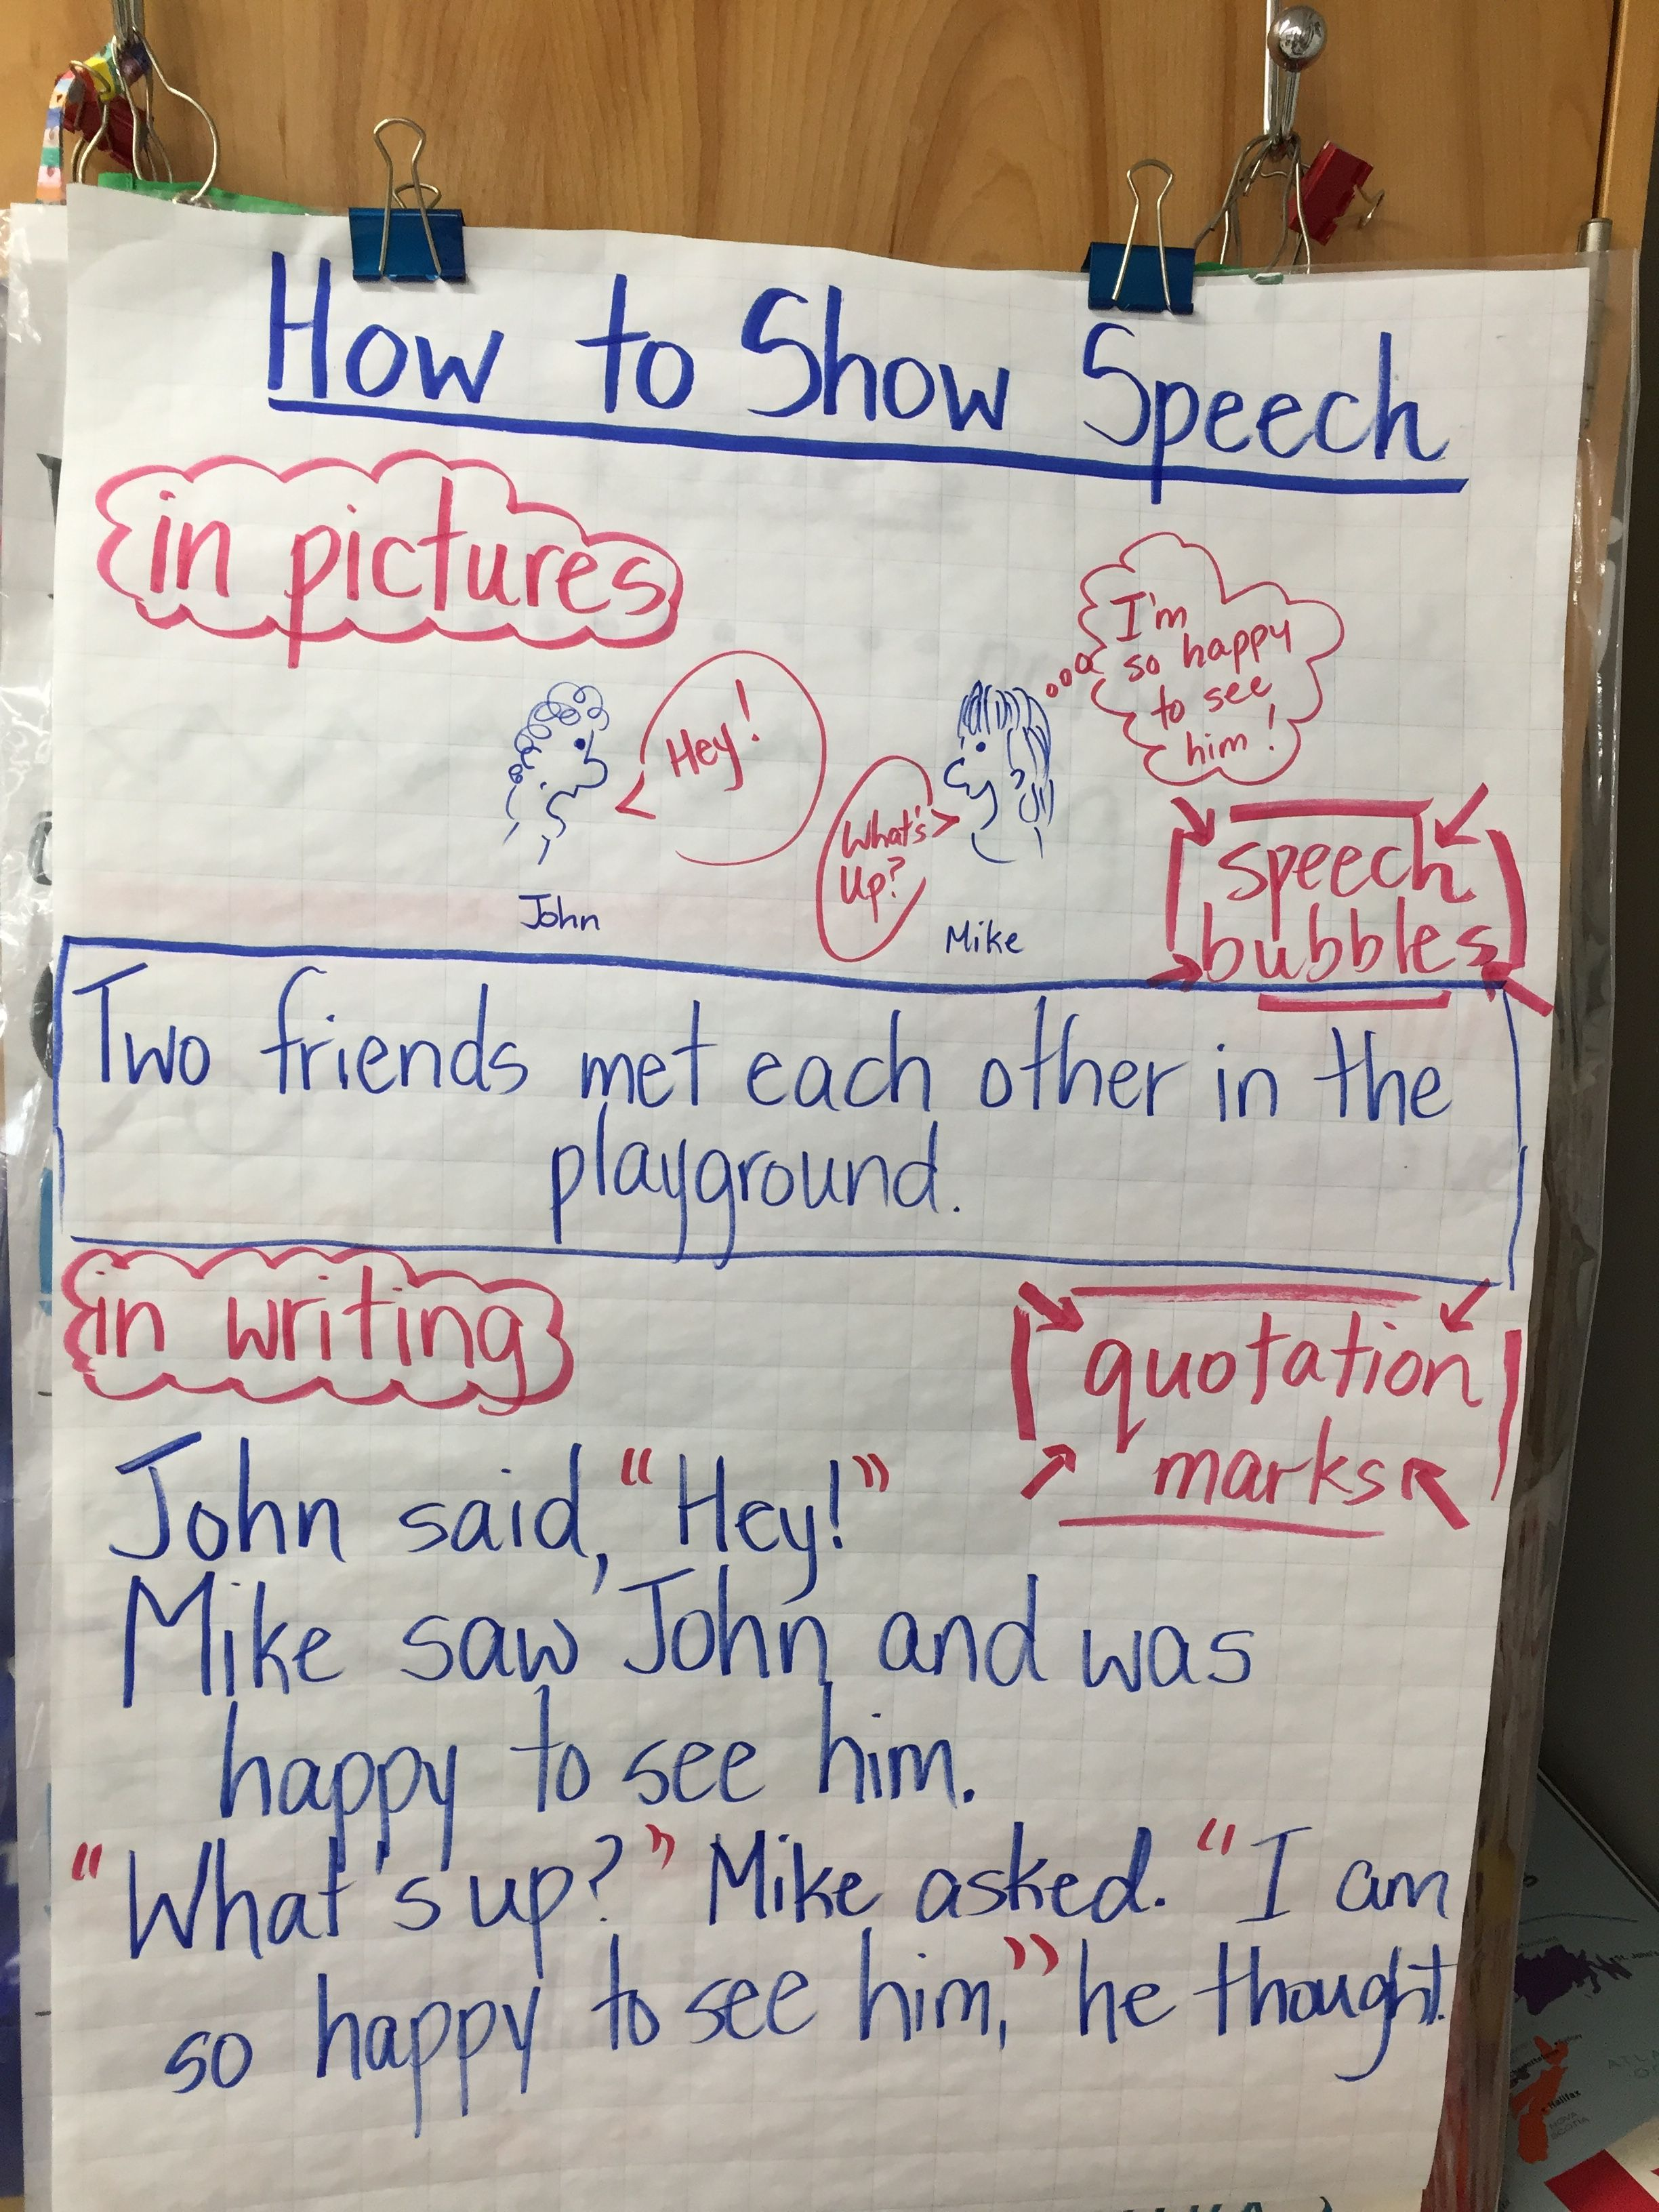 Quotation Marks Vs Speech Bubbles How To Show Speech In